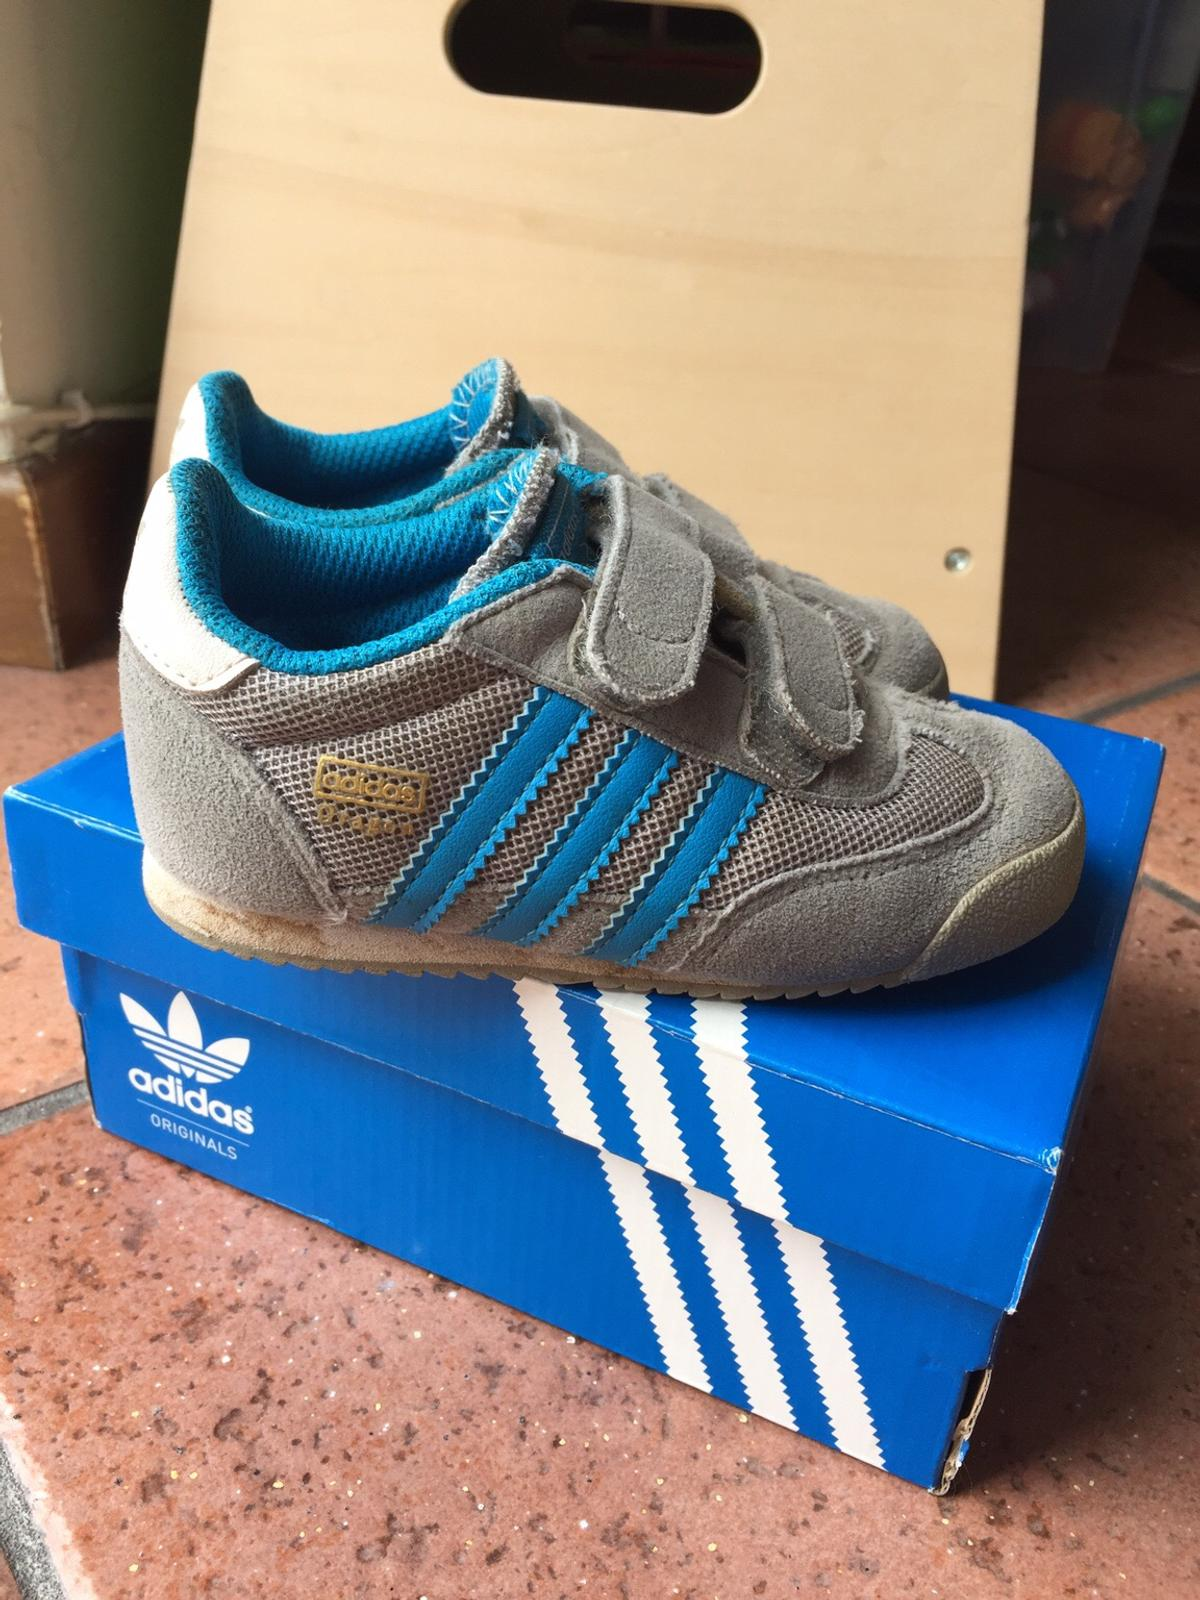 Península filosofía Ernest Shackleton  Adidas dragon 23 in 00164 Roma for €10.00 for sale | Shpock